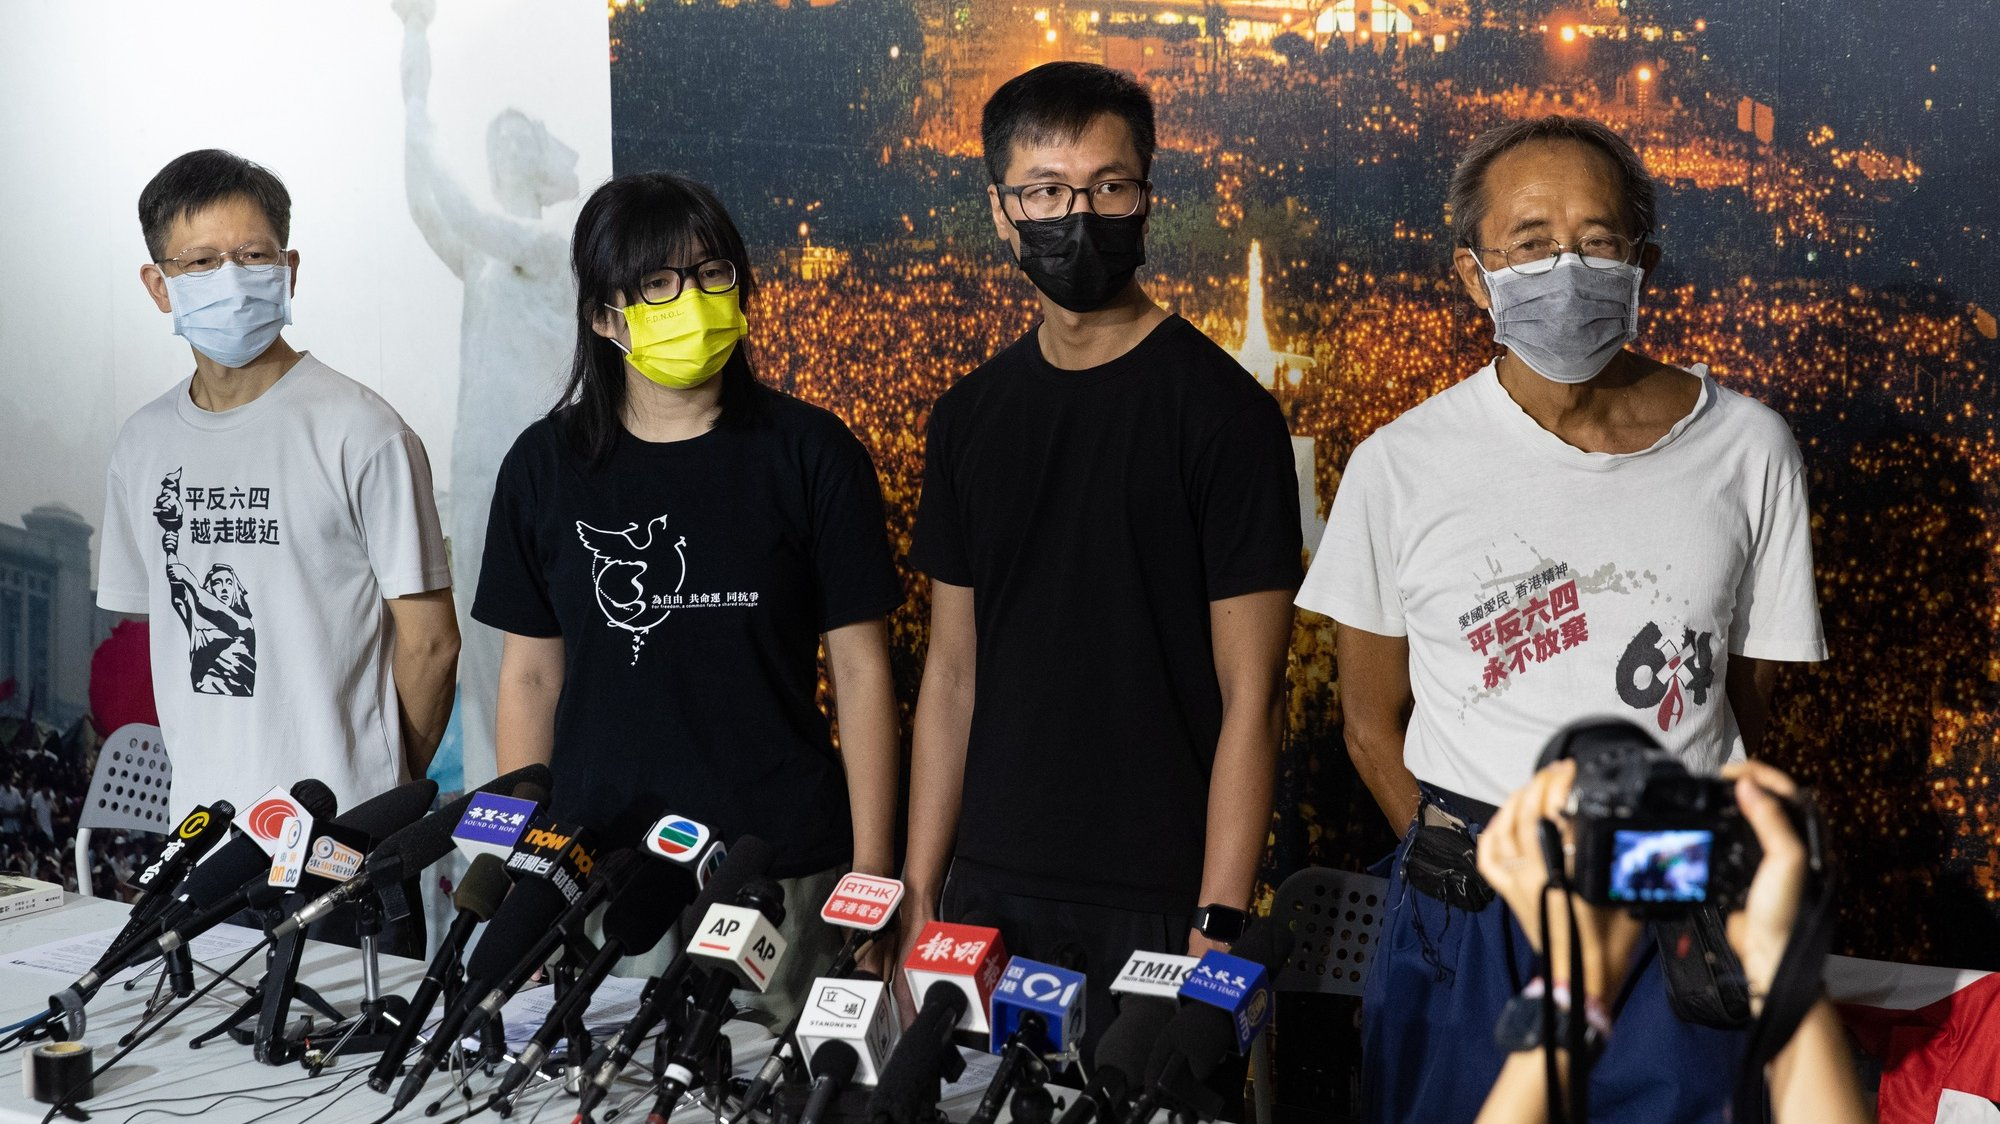 epa09454469 The vice-chairwoman of The Hong Kong Alliance in Support of Patriotic Democratic Movements in China Chow Hang-tung (2-L) and fellow alliance members Leung Kam-wai (2-R), and Tang Ngok-kwan (L), meet reporters in Hong Kong, China, 05 September 2021, (issued 08 September 2021). Chow, Leung, Tang and another core member of the alliance organizing Hong Kong's annual Tiananmen Square candlelit vigil were arrested early 08 September 2021, one day after officially refusing to cooperate with a national security investigation.  EPA/JEROME FAVRE